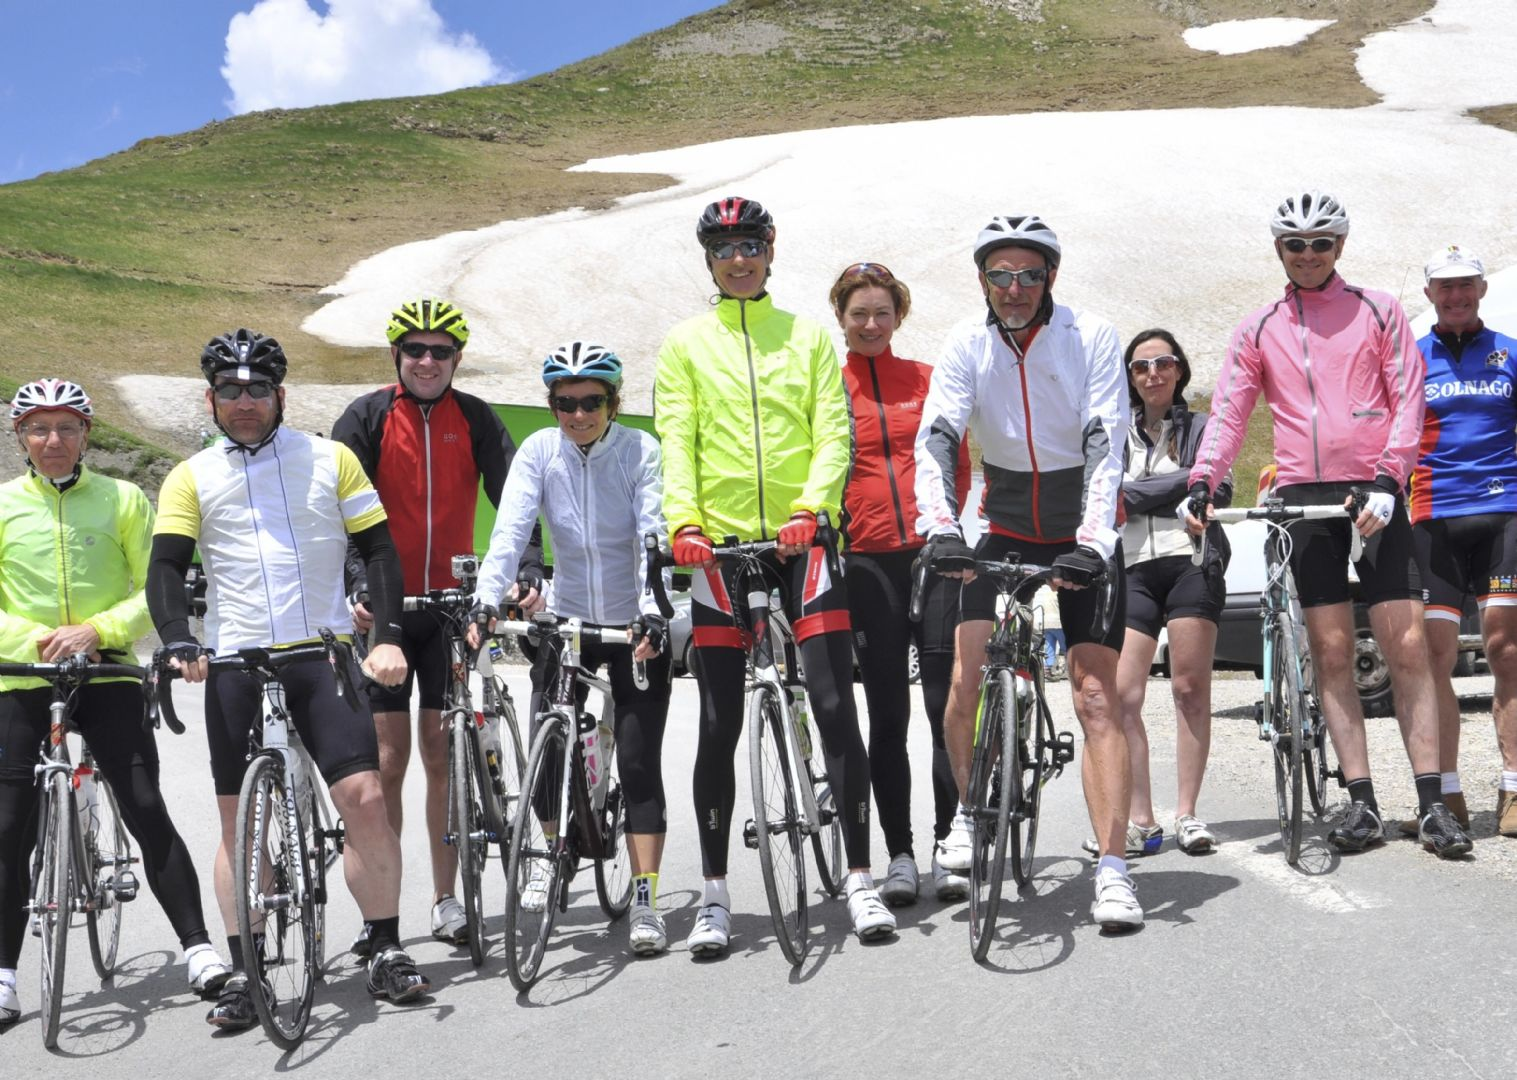 francepyrenees3.jpg - France - Trans Pyrenees Challenge - Guided Road Cycling Holiday - Road Cycling